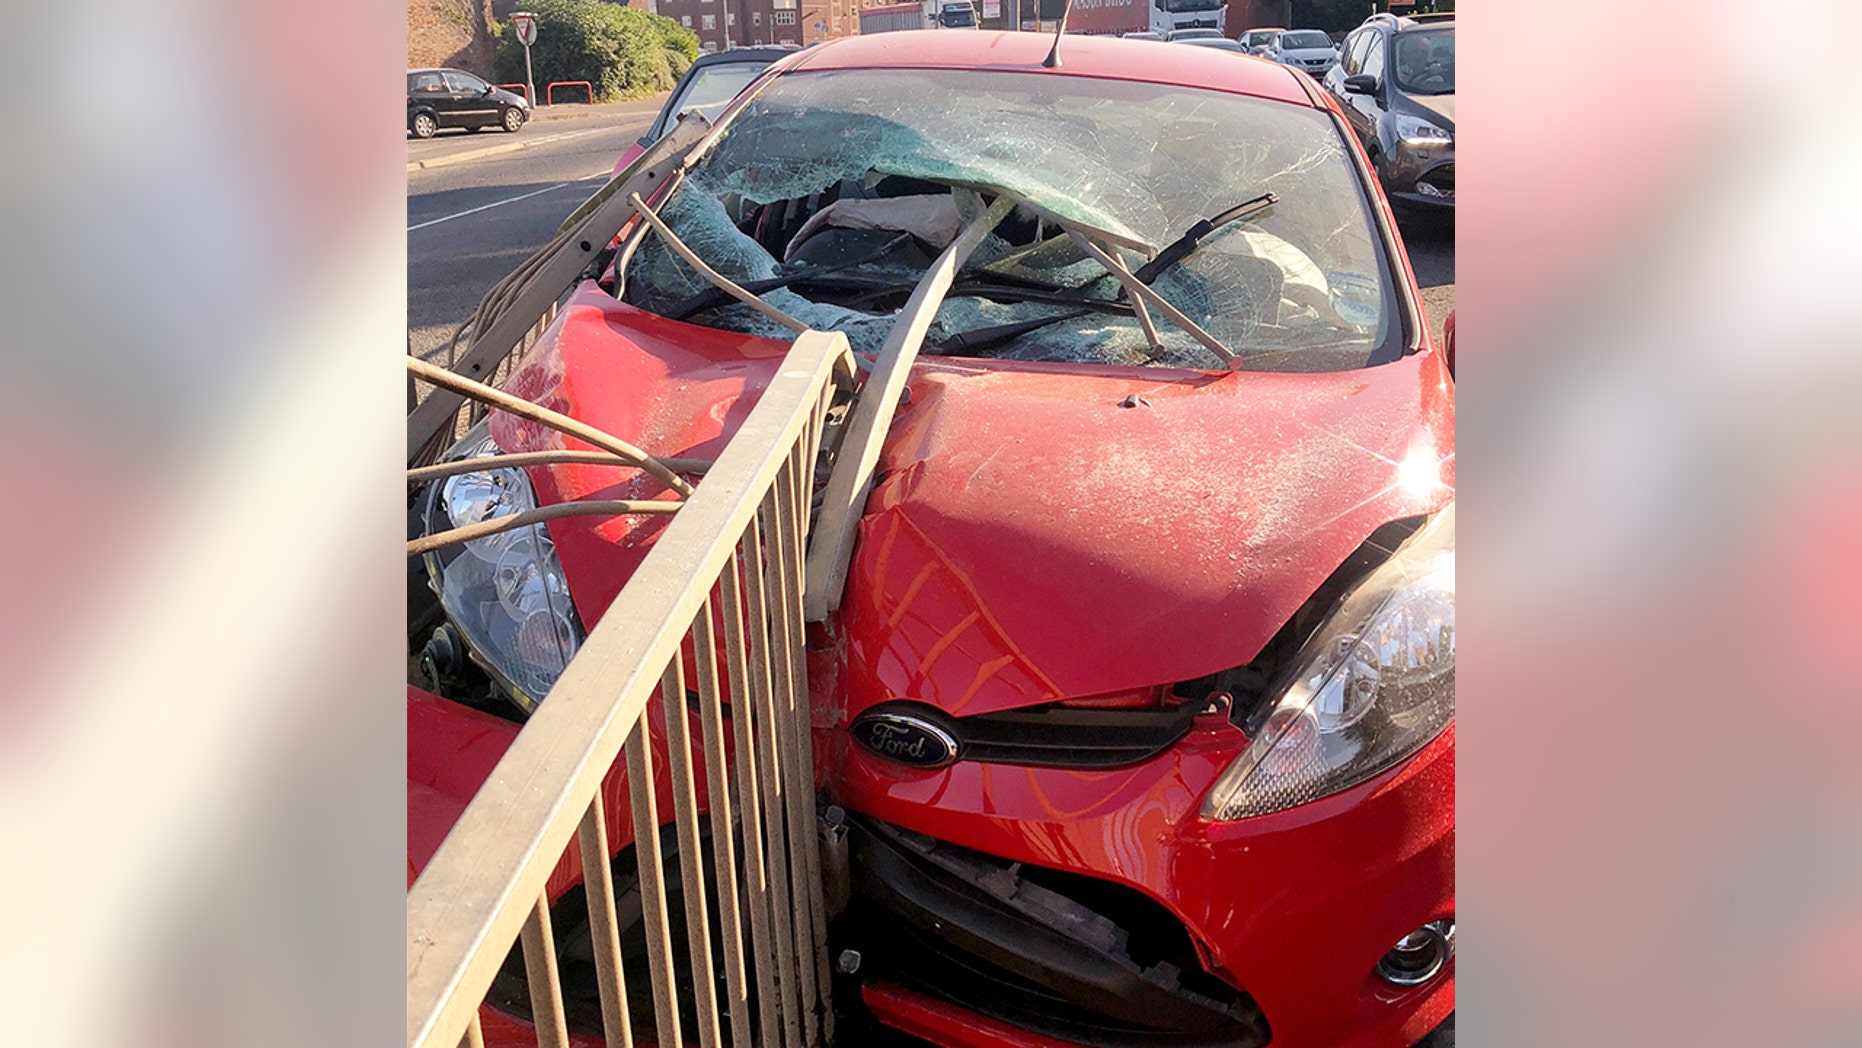 A motorist cheated death after a metal pole pierced his windscreen during a crash - missing his head by inches.  See NTI story NTICRASH.  The unnamed driver had a miracle escape when he ploughed into metal railings sending a 6ft long metal 'spear' from a barrier smashing through the front window.  Shocking pictures show just how close the pole came to hitting the motorist following the horror smash last Tuesday (10/7).  Emergency services were called to the scene on John Adams Way, in Boston, Lincs., but the Ford Fiesta driver did not require any medical treatment.